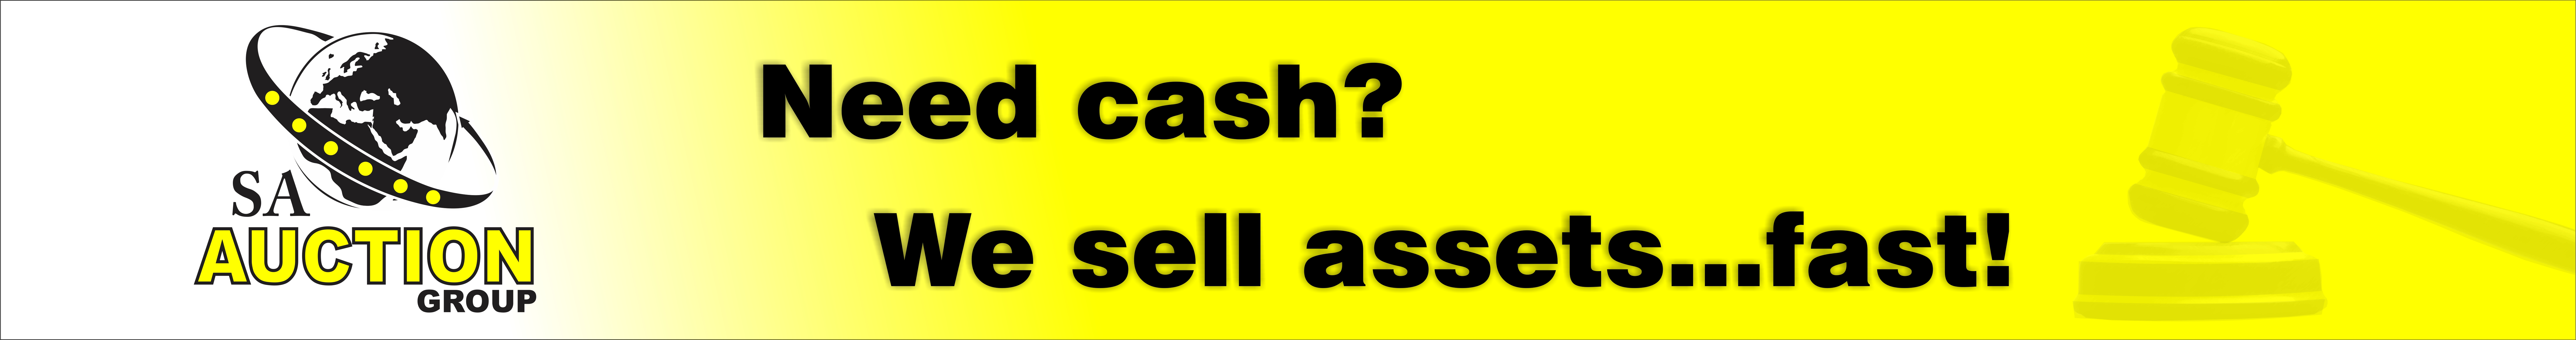 SA Auction Group - Need Cash?